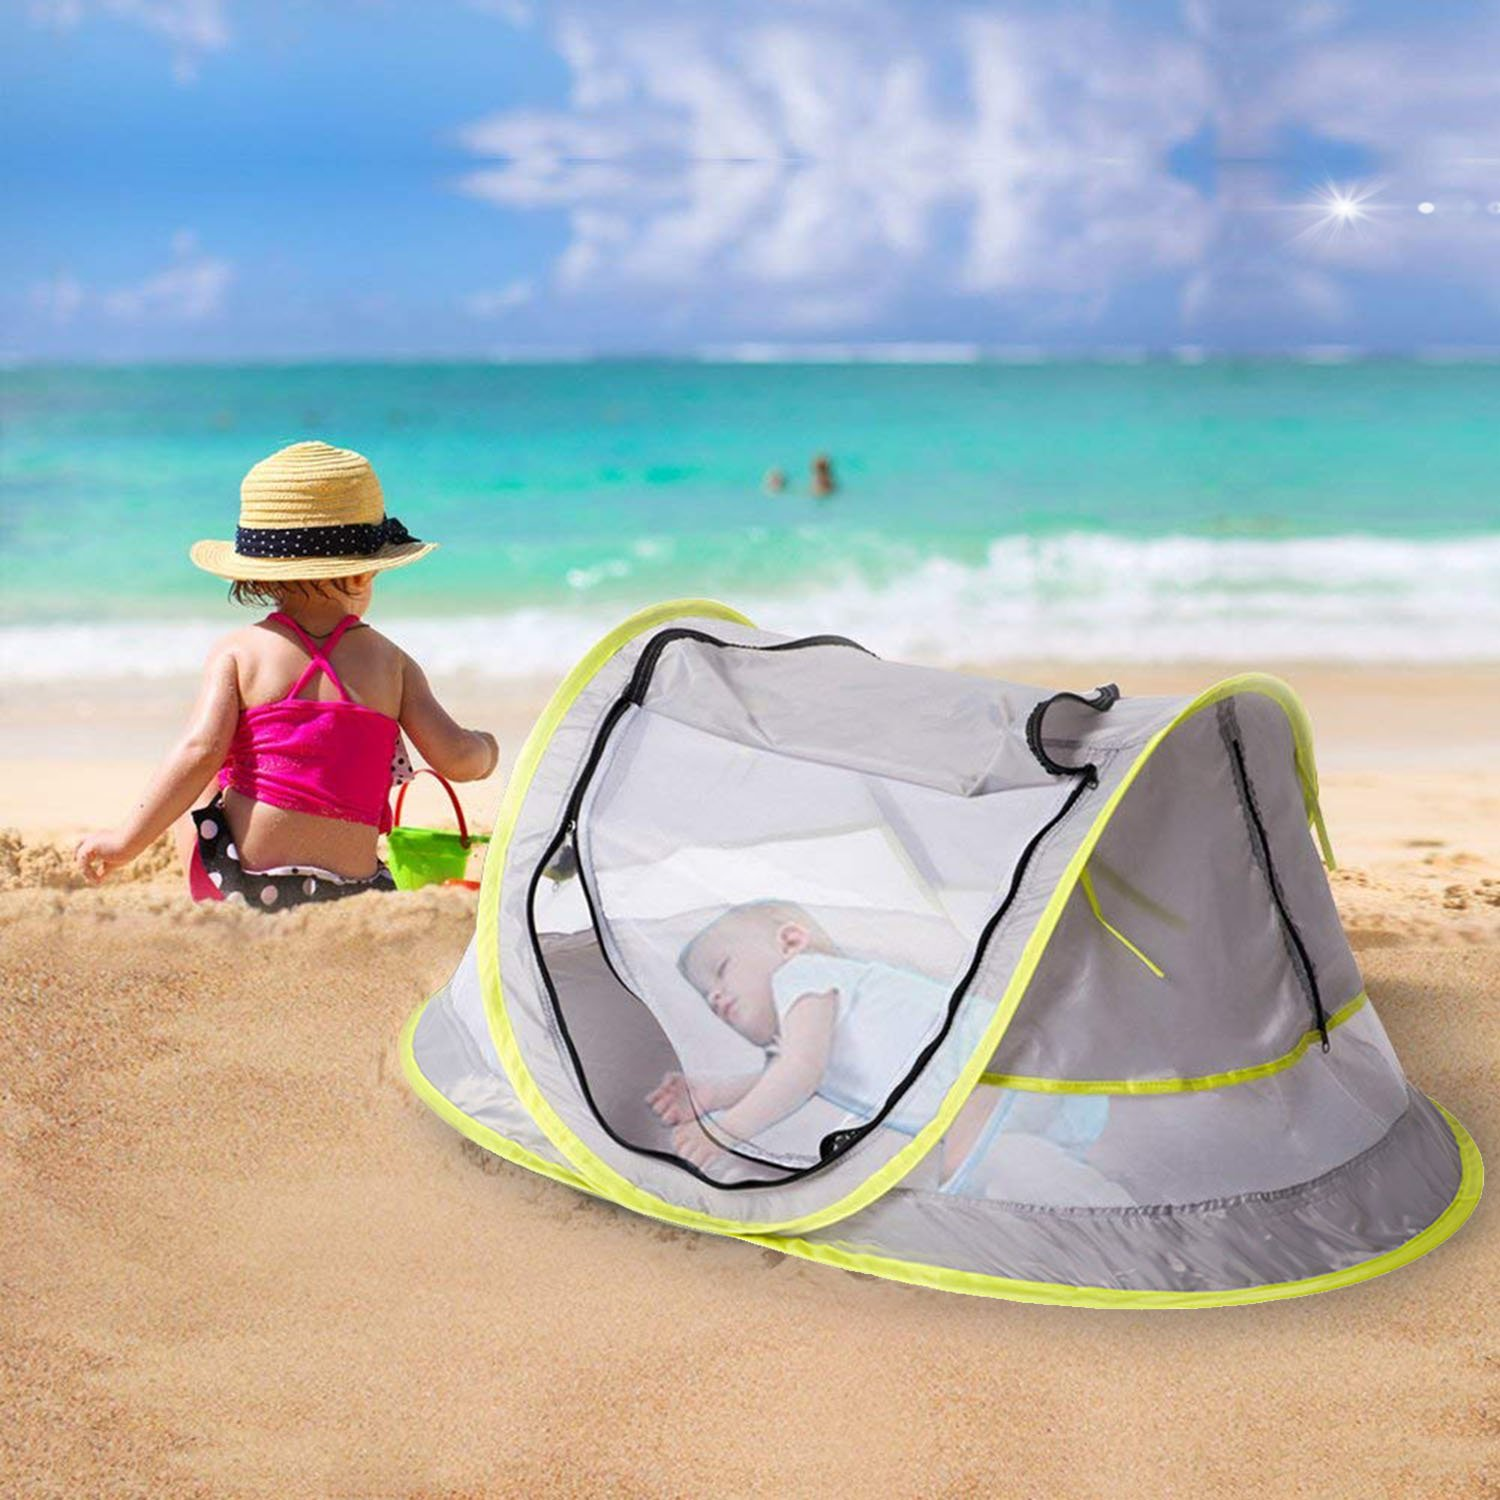 Micoo Baby Travel Tent, Portable Beach Pop Up Tent, Large Baby Travel Bed,UPF 50+ Sun Travel Cribs Bed, Mosquito Net and Sunshade, Lightweight Outdoor Travel Baby Crib Bed for Infant and Babies by Micoo (Image #7)